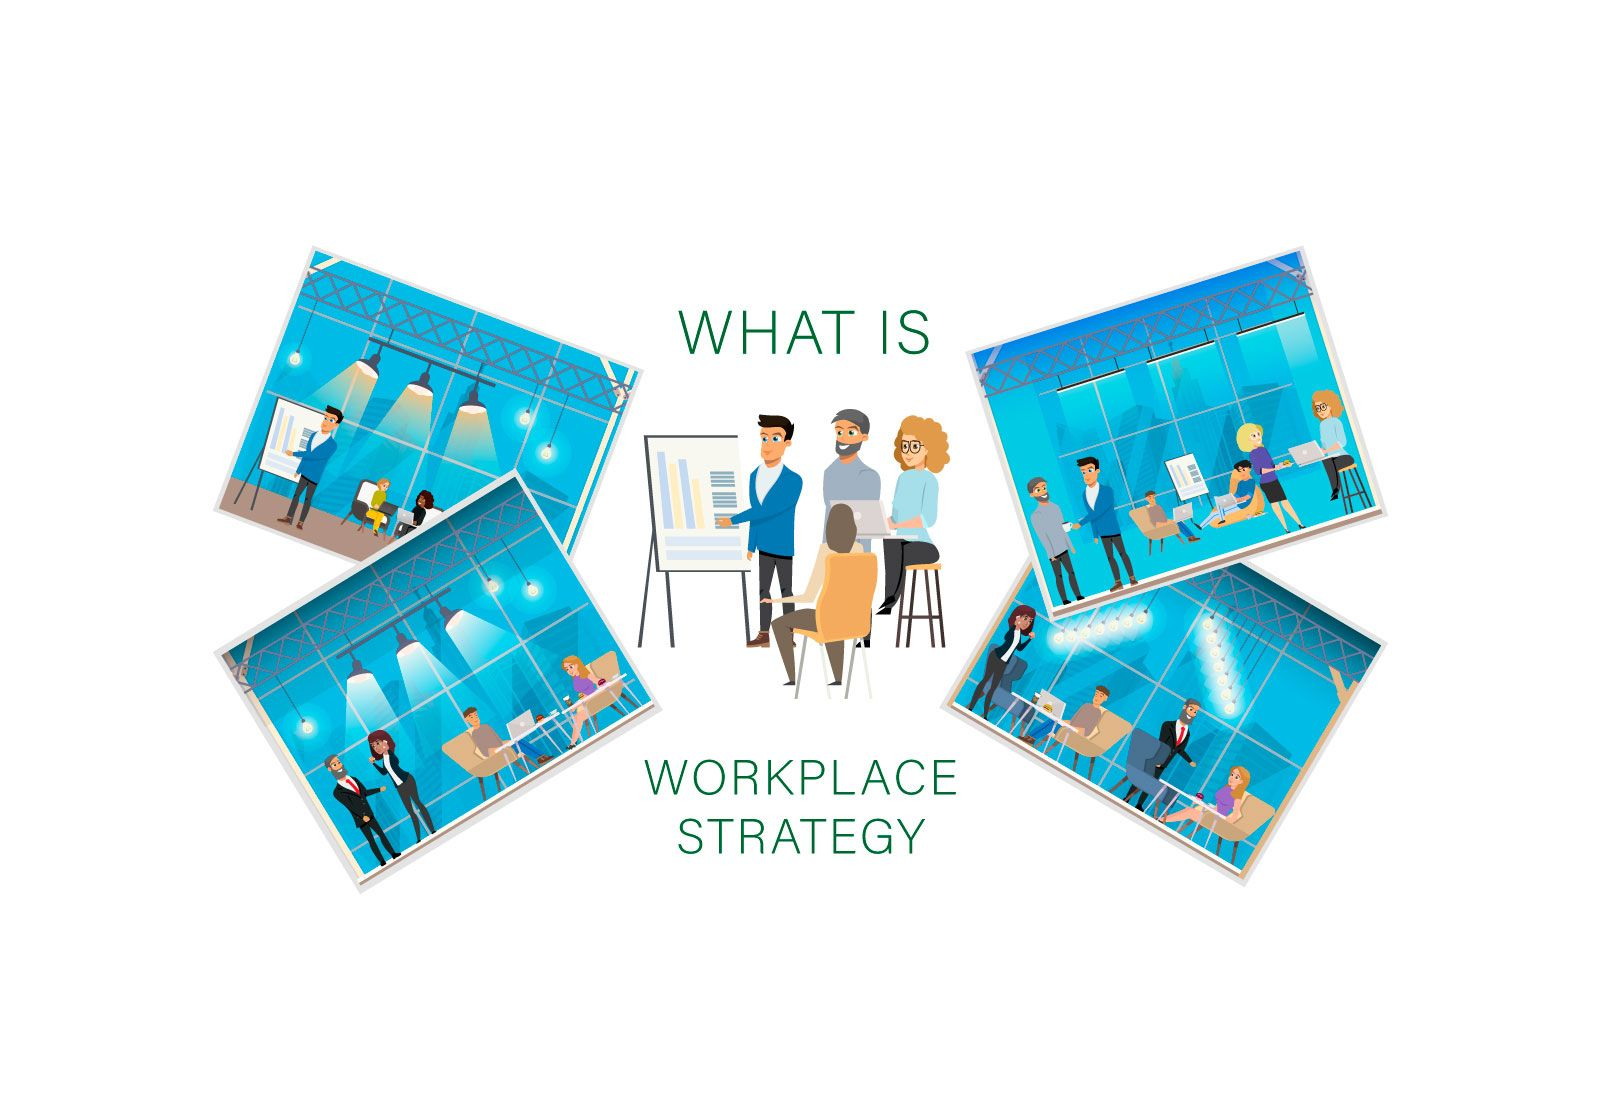 Workplace Strategy What Is It? in 2020 Workplace, Space